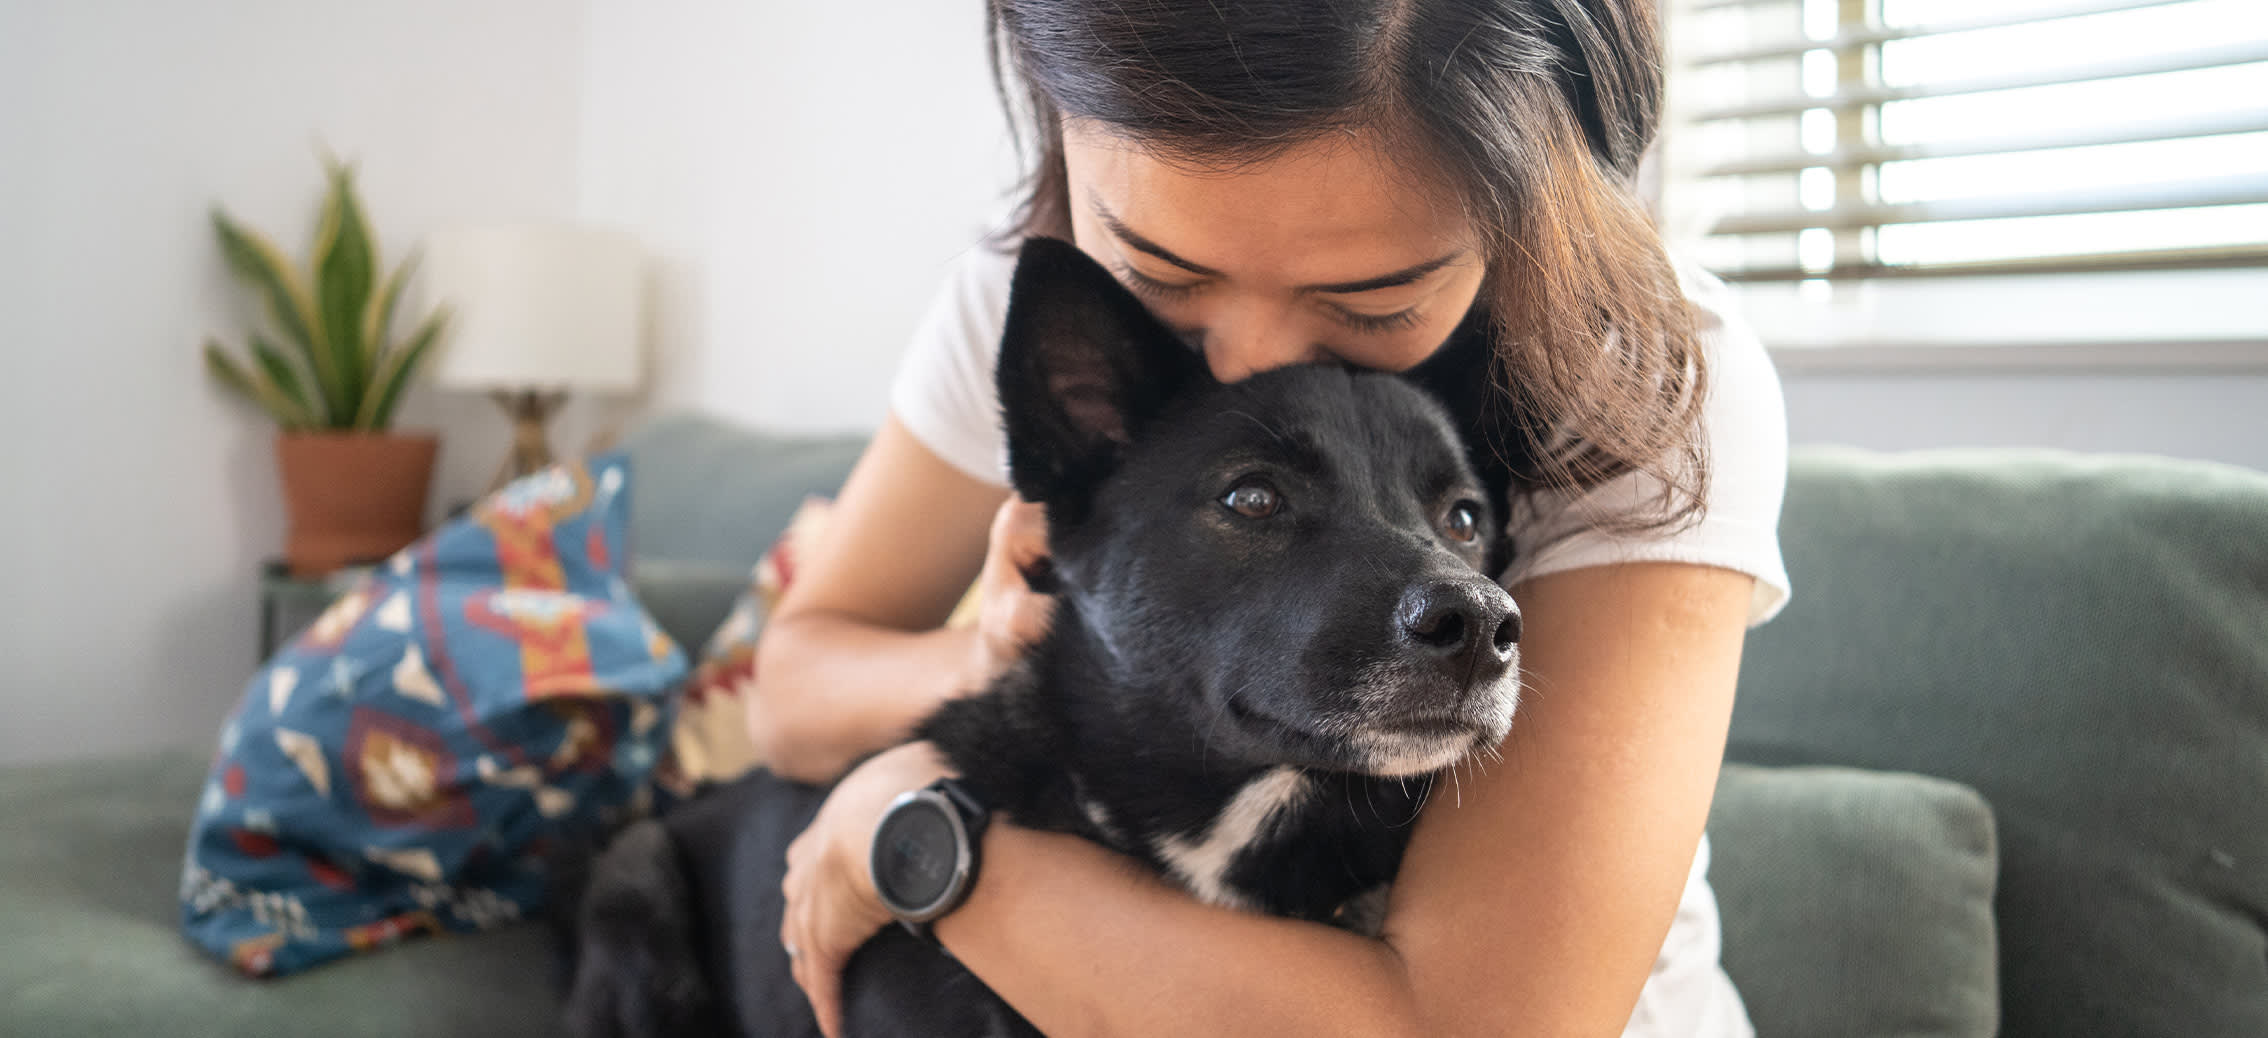 Removing Pet Hair Quickly